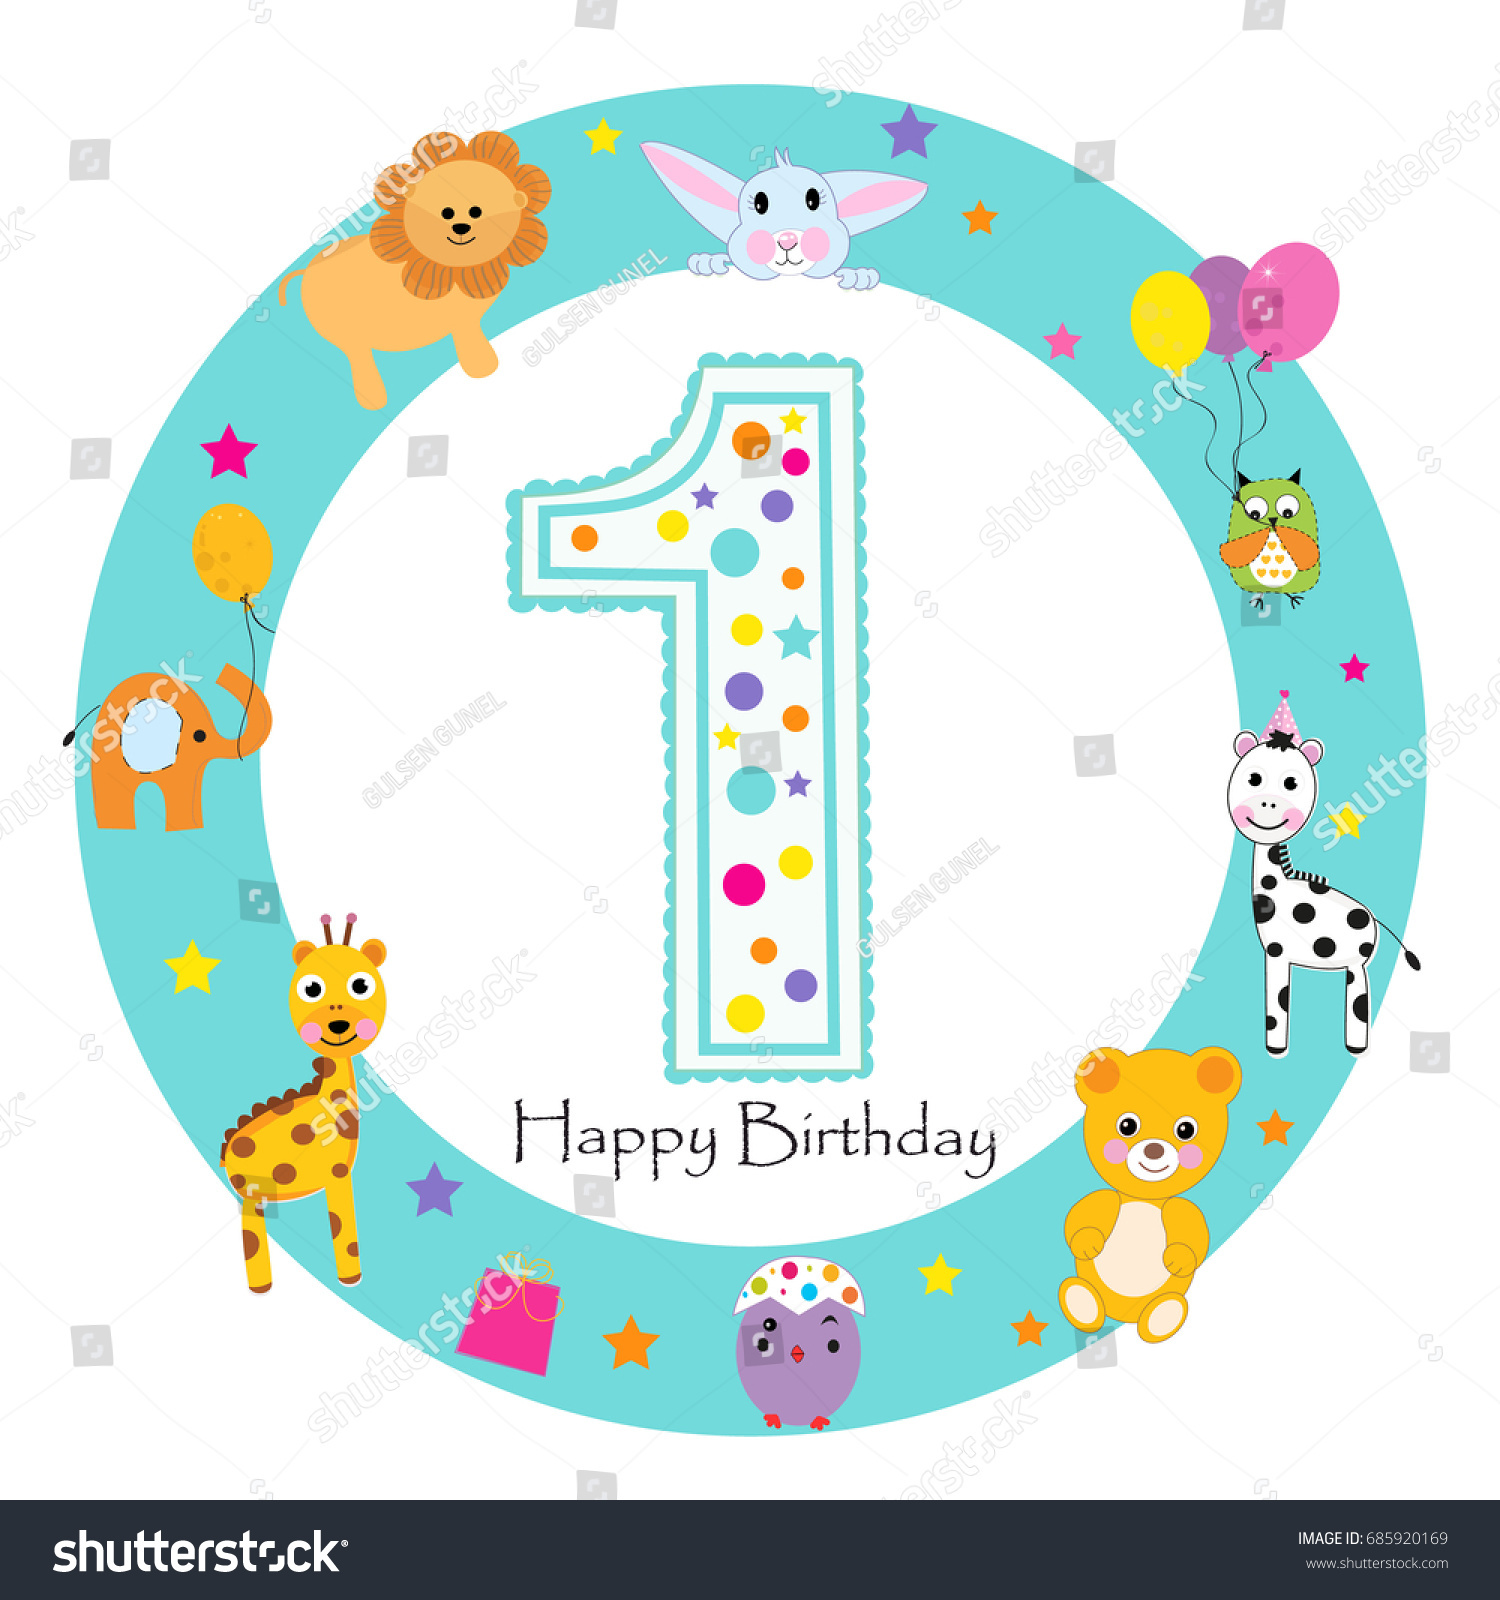 Happy Birthday Baby Card Image collections Free Birthday Cards